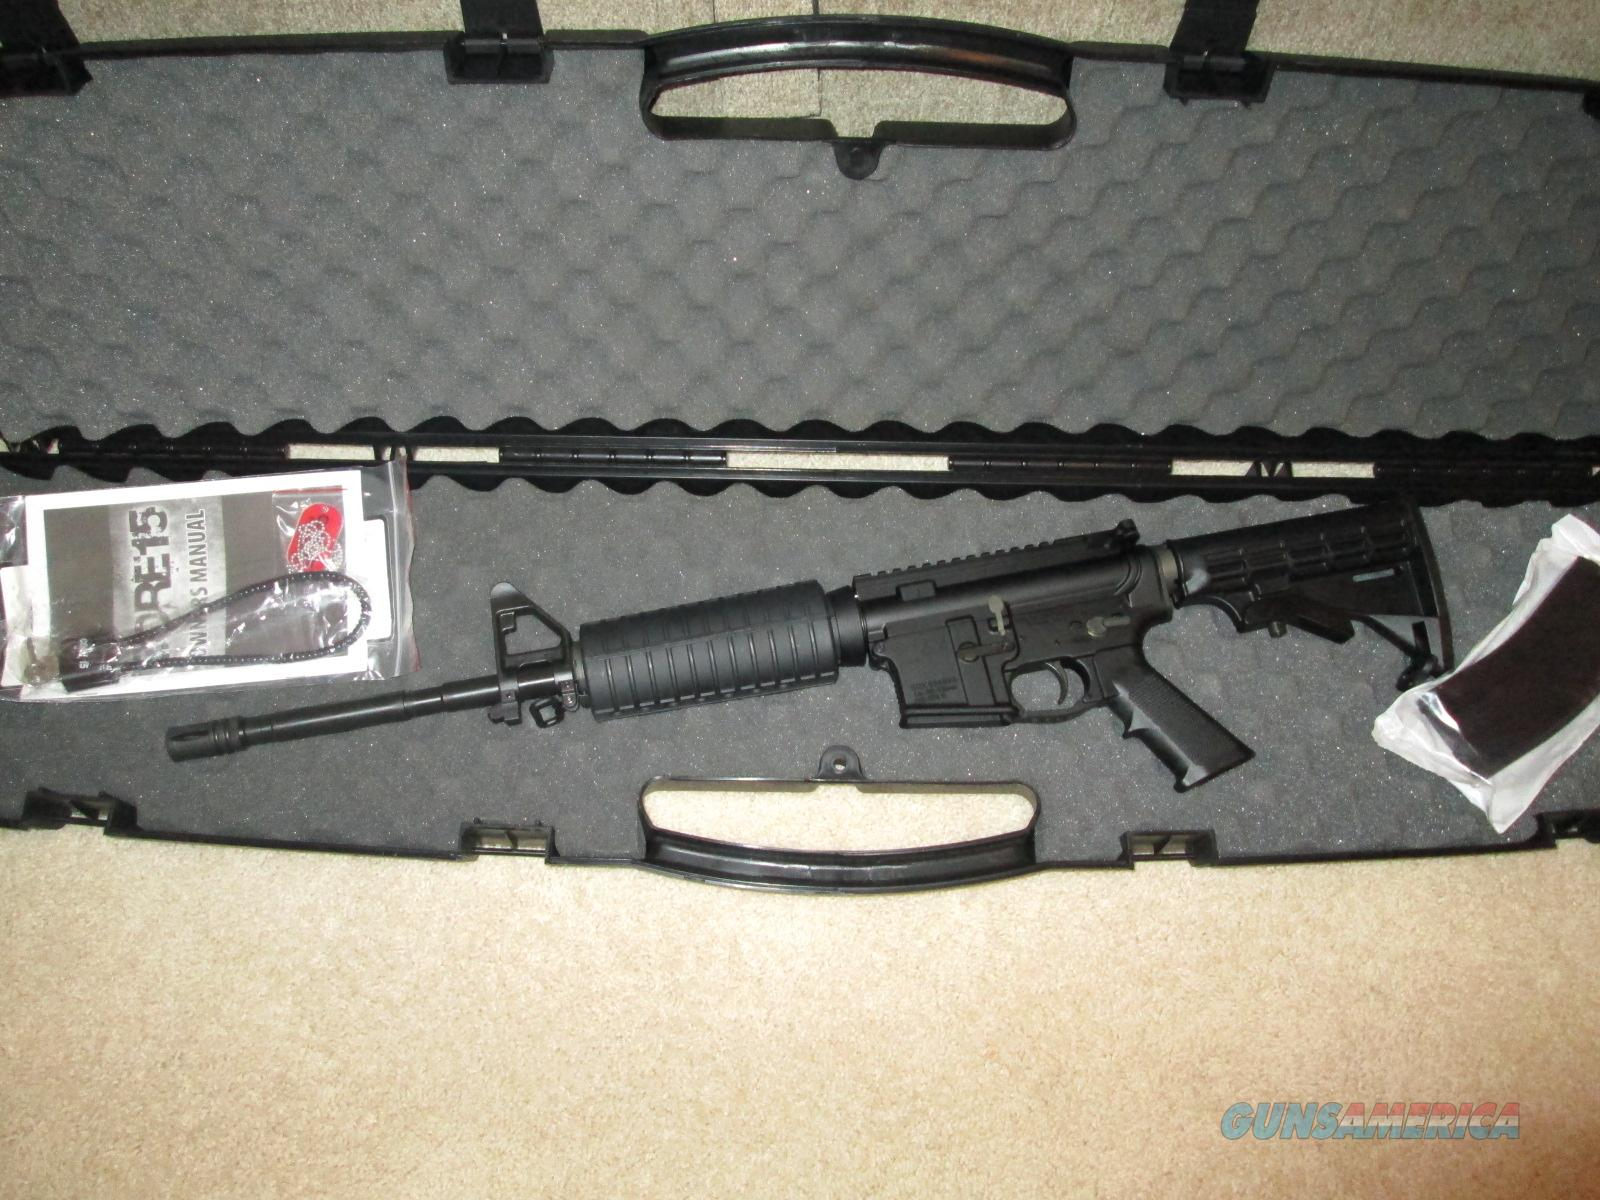 ON SALE! Core15 M4 Scout AR-15  Guns > Rifles > AR-15 Rifles - Small Manufacturers > Complete Rifle